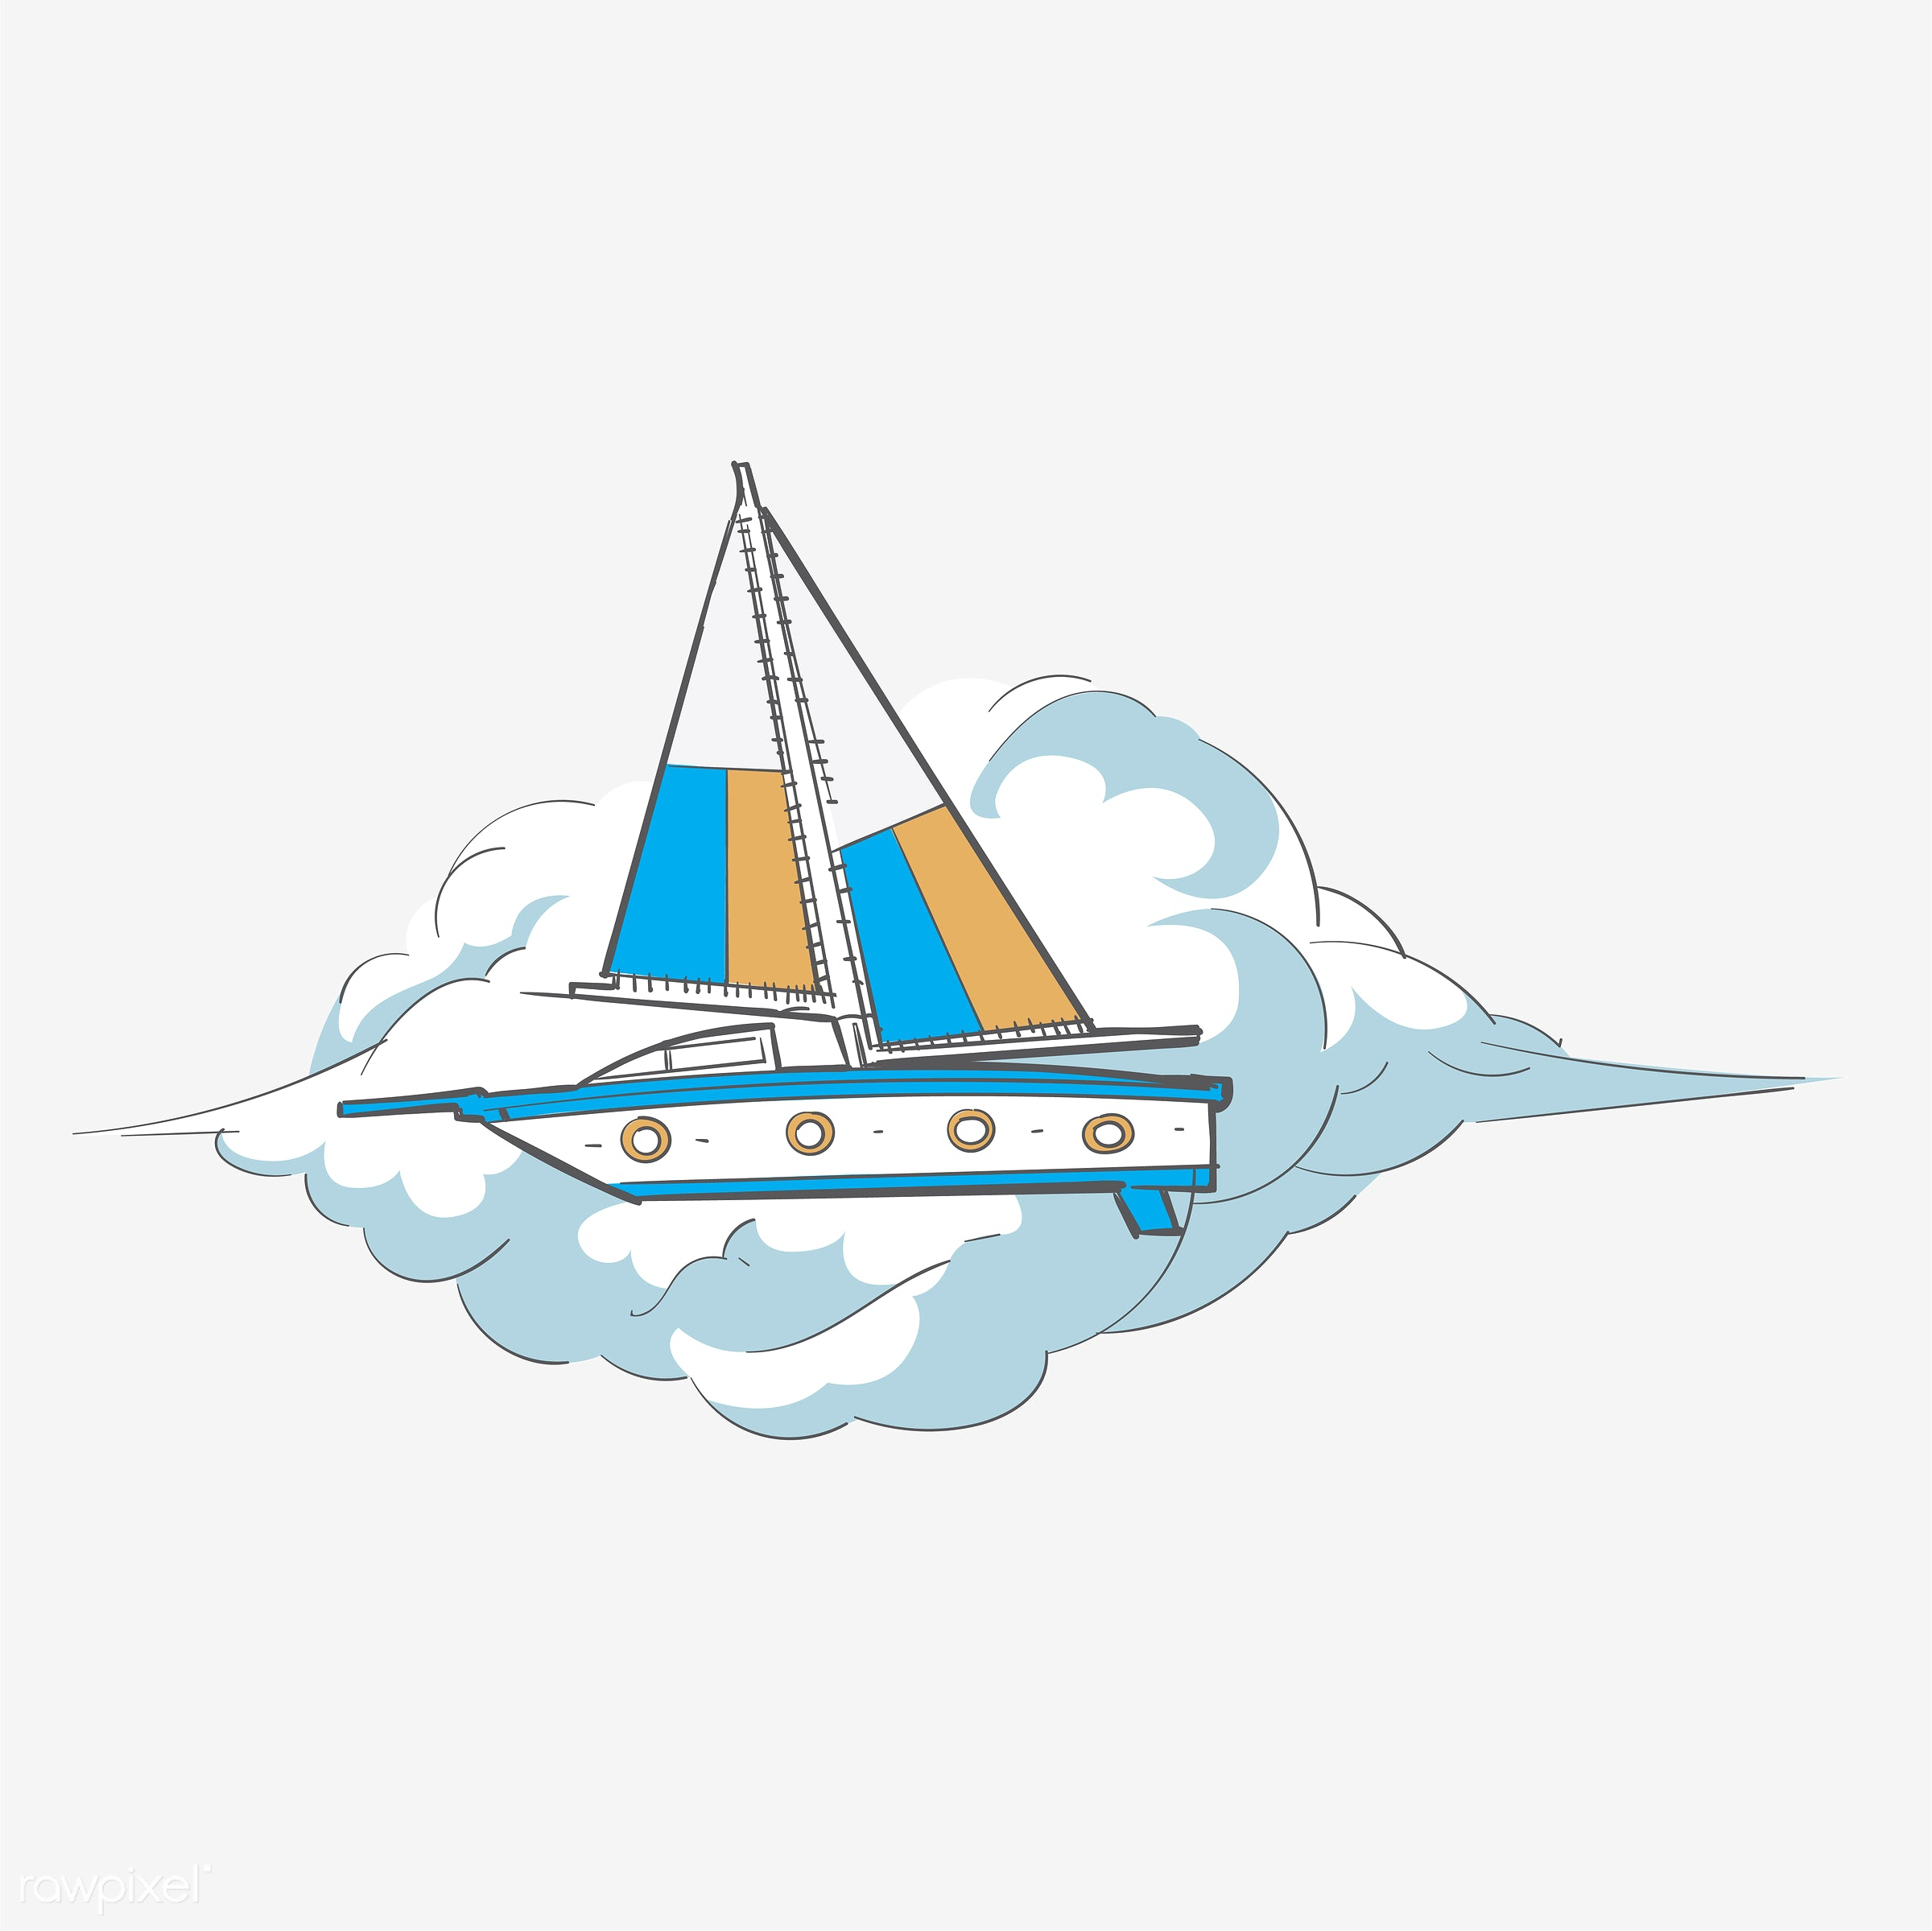 Hand drawing illustration of freedom concept - art, artwork, boat, creative, creativity, cruise, design, draw, drawing,...